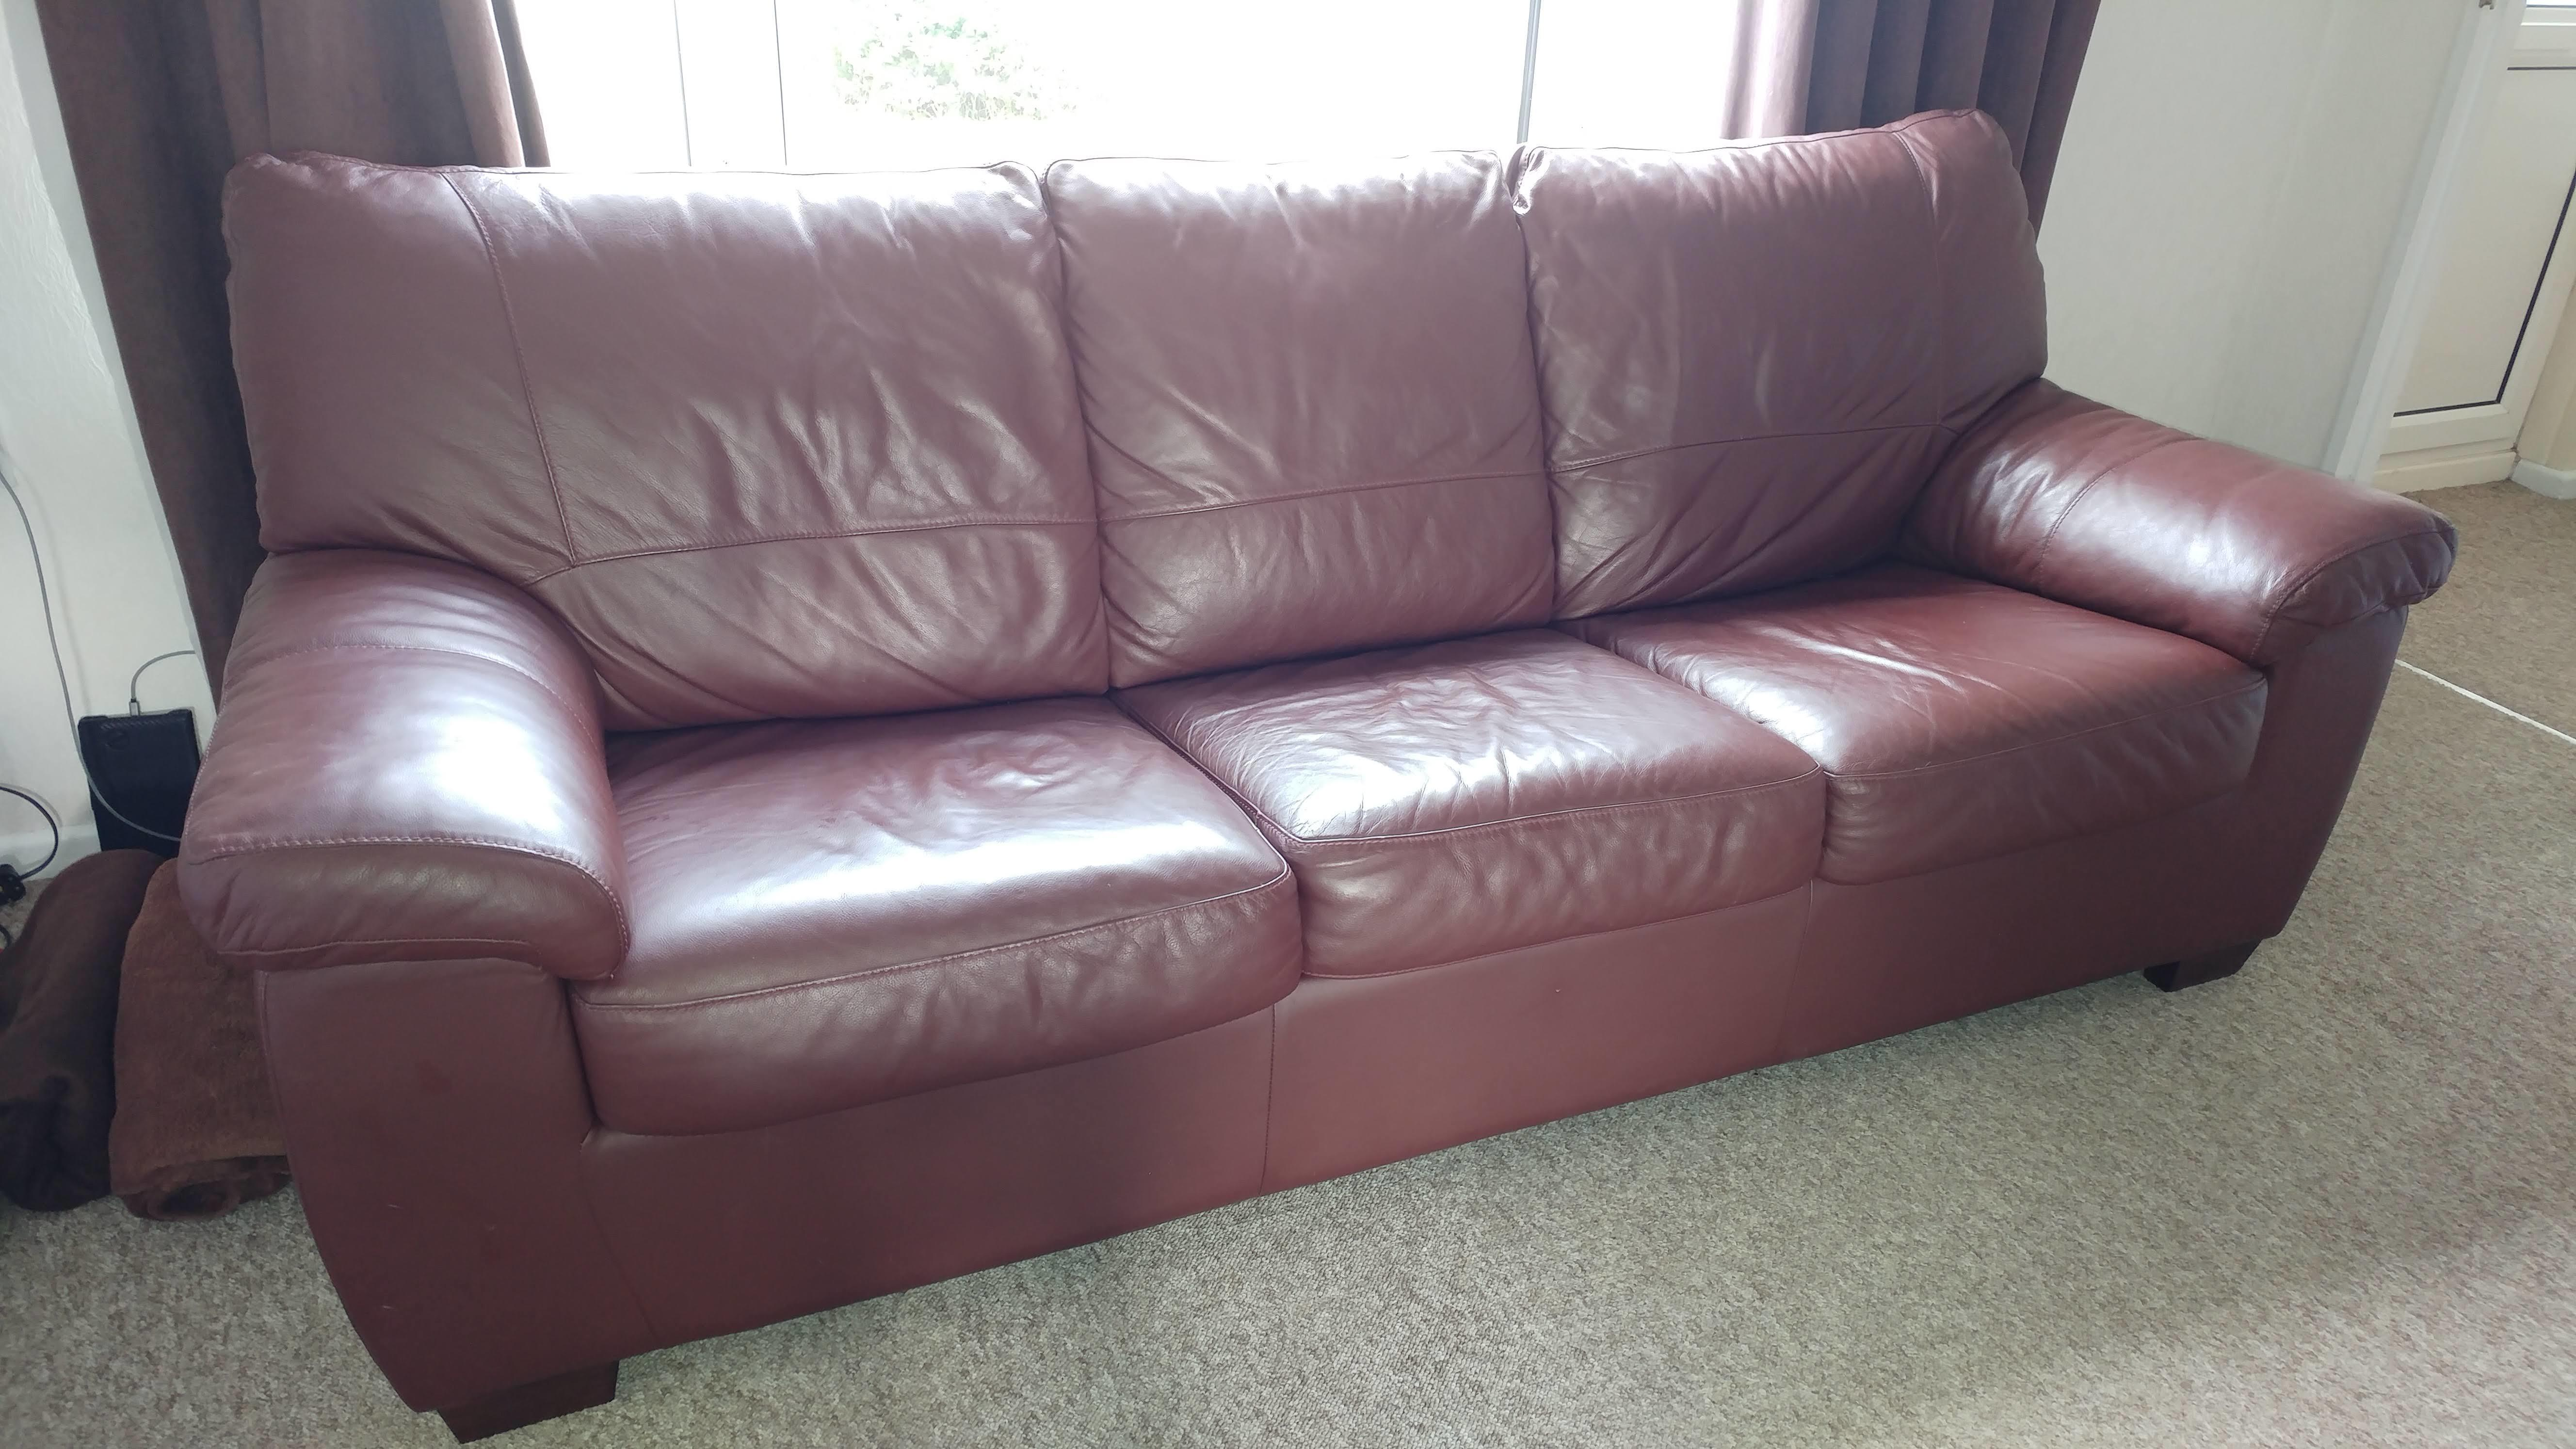 Peachy Large Leather Sofa Bed Price Reduced In Ventnor Wightbay Pdpeps Interior Chair Design Pdpepsorg